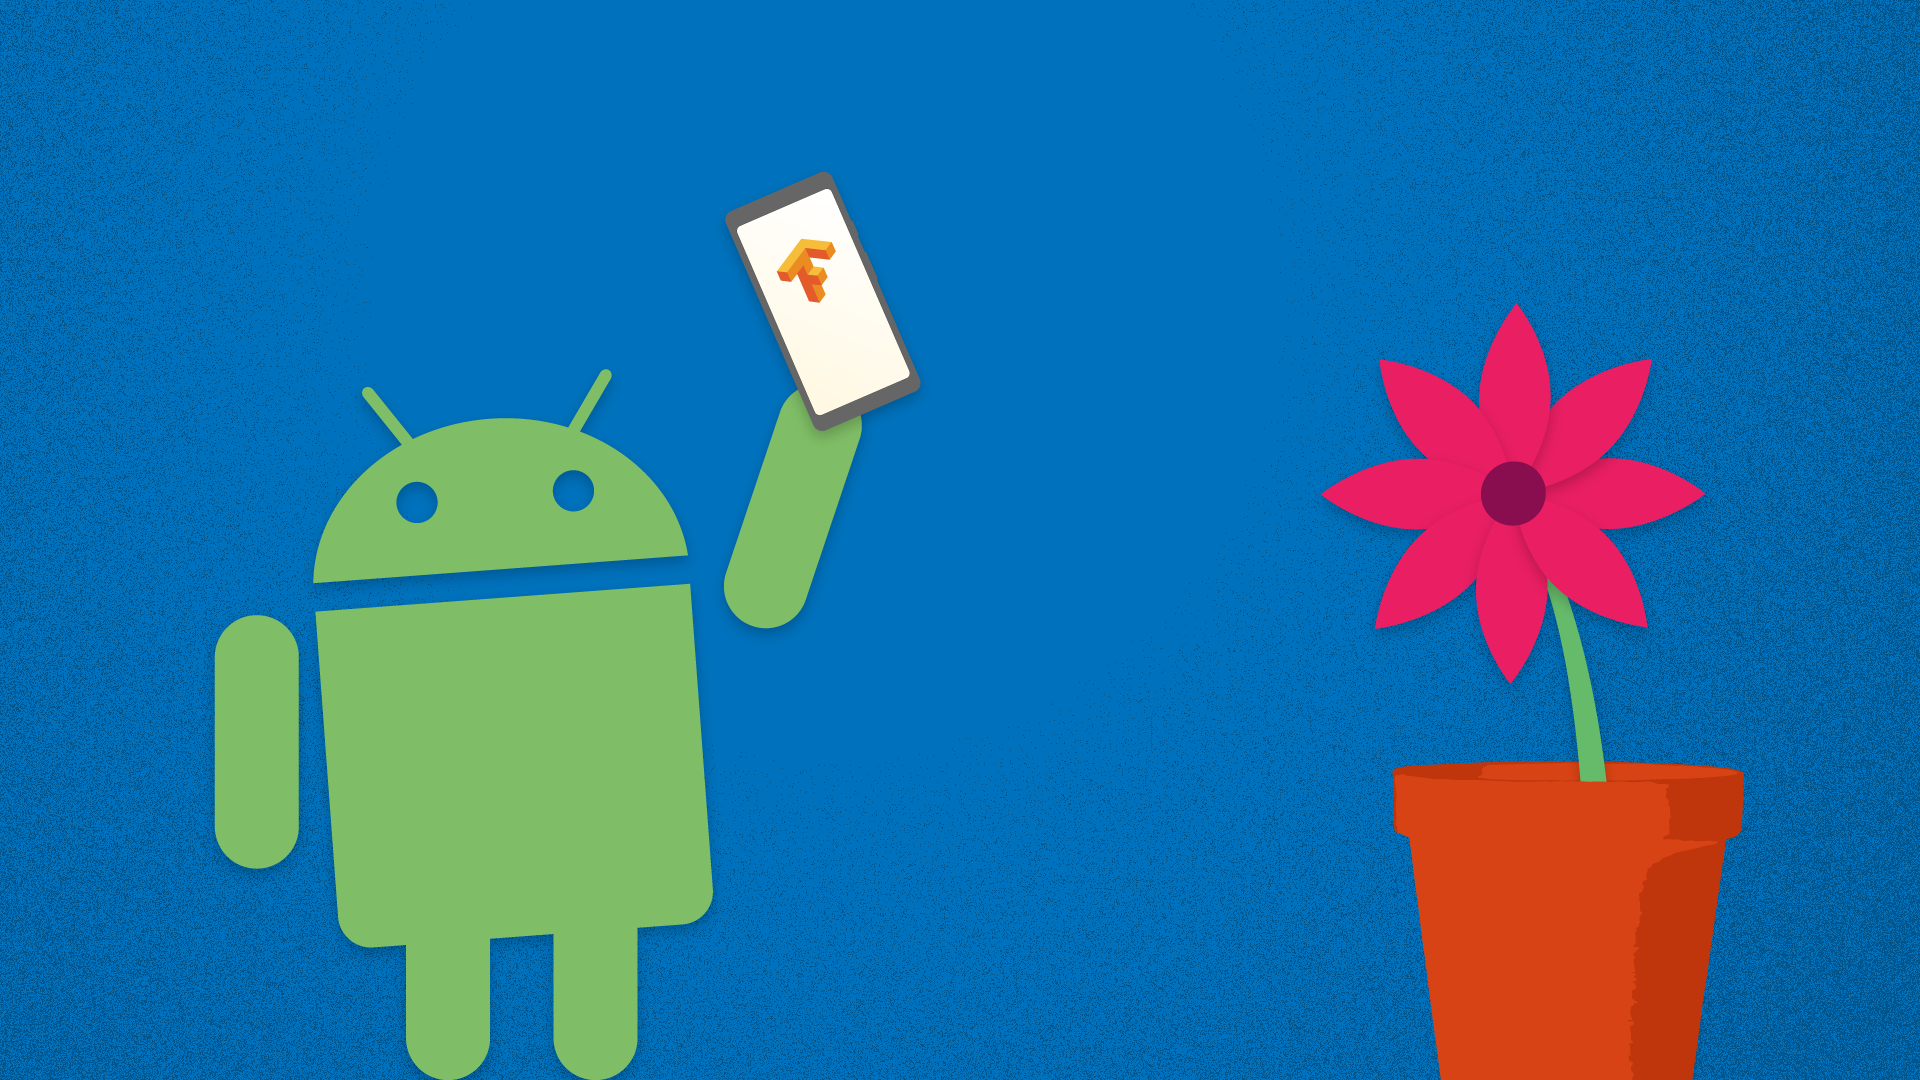 An android pointing a smartphone at a plant